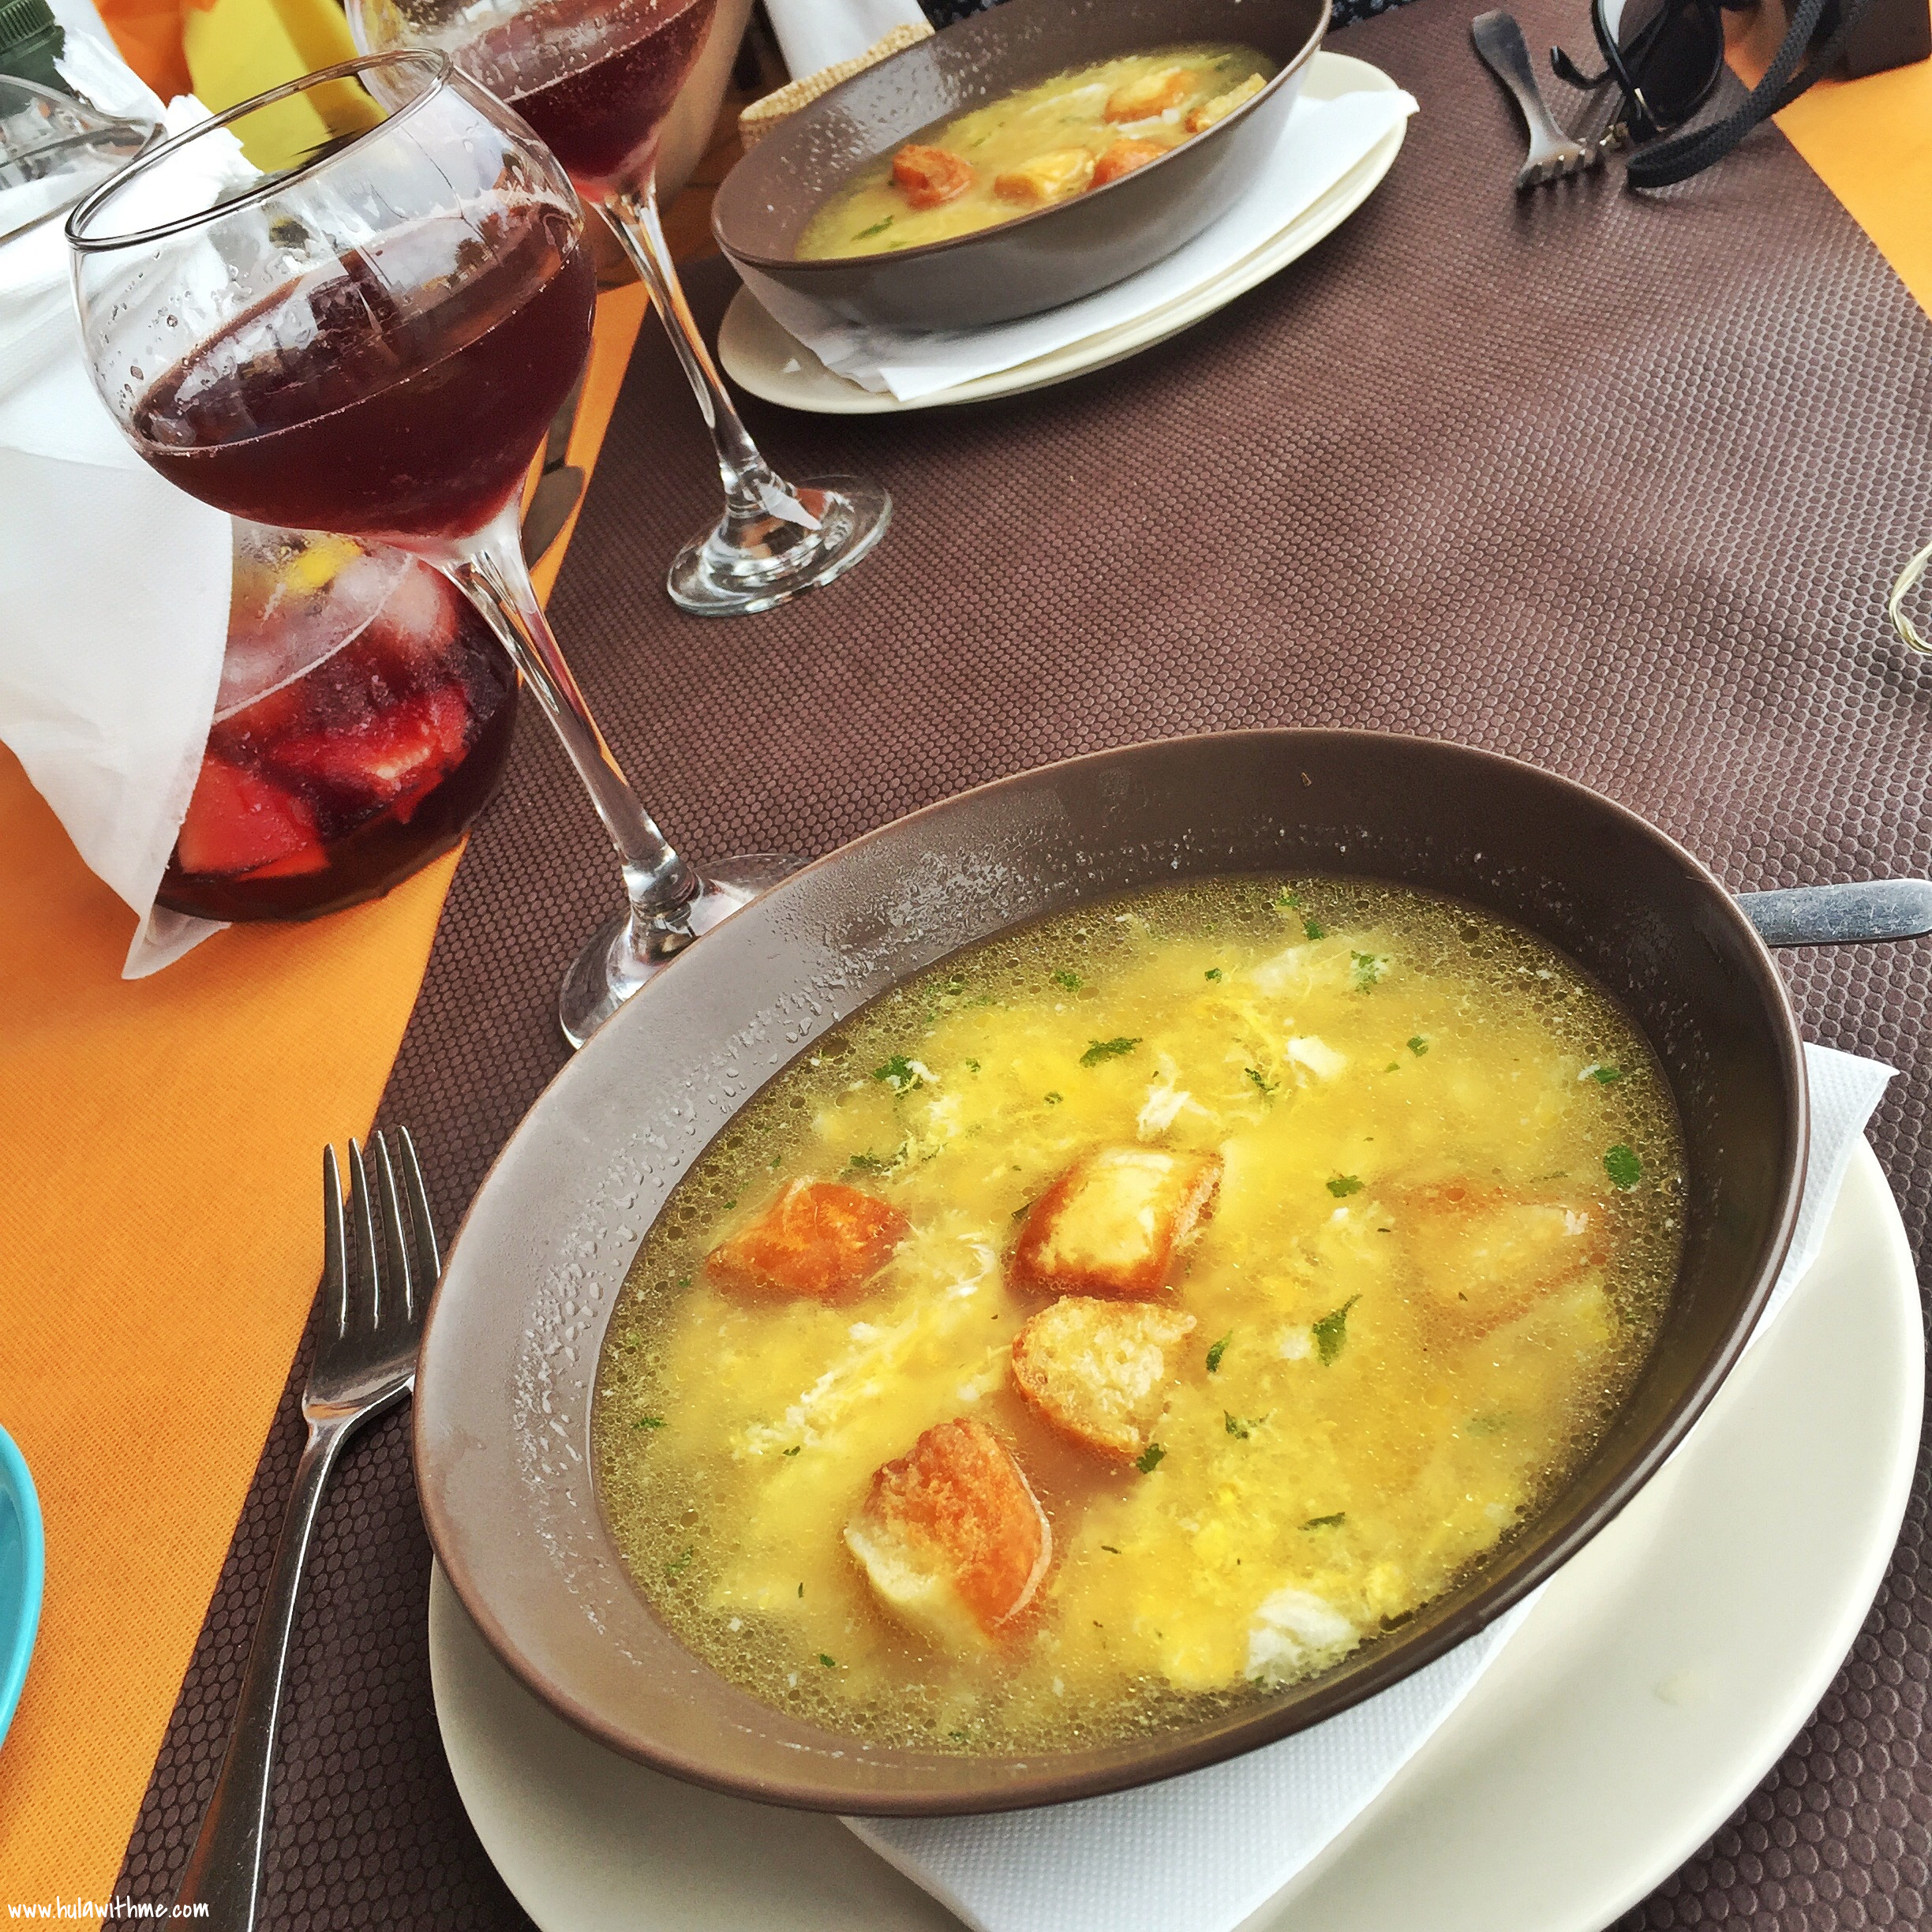 Canary Islands Food Finds - O'Fado Portuguese Restaurant. Acorda alentejana - a soup-like dish cooked with garlic, coriander, olive oil, vinegar, eggs, along with sliced bread; a glass of sangria.